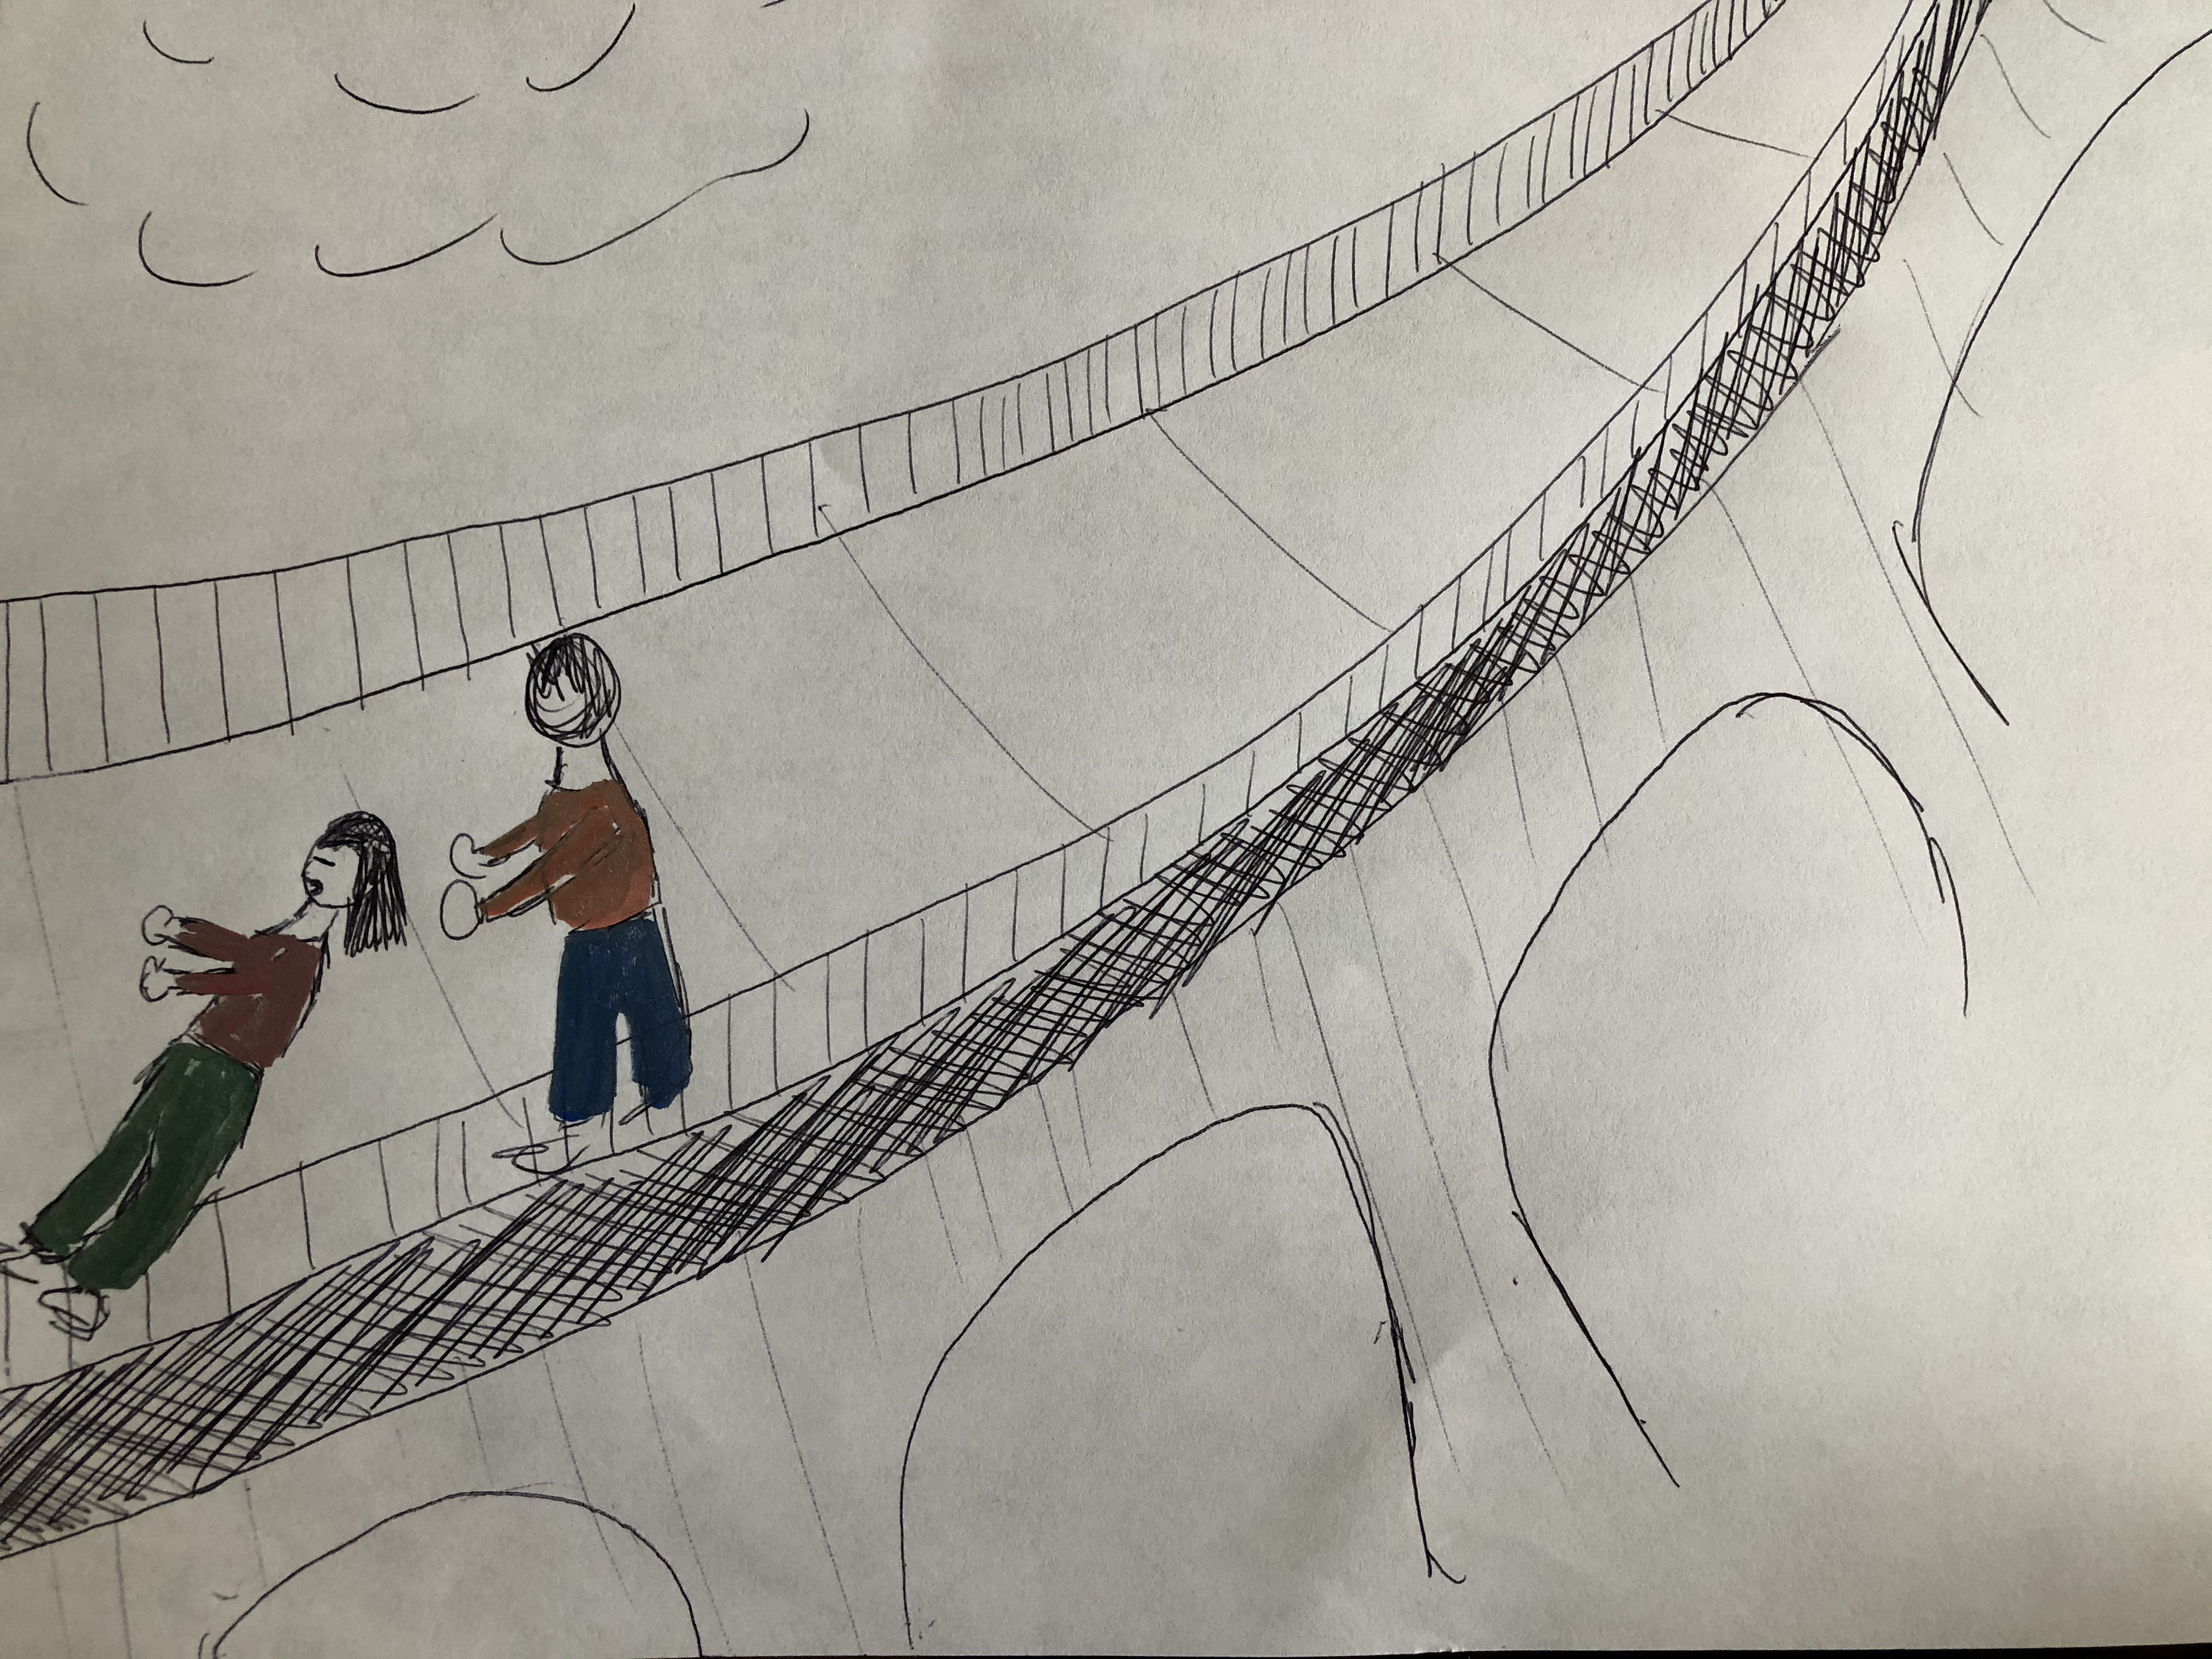 Drawing of a bridge and cloud with two people on the bridge.